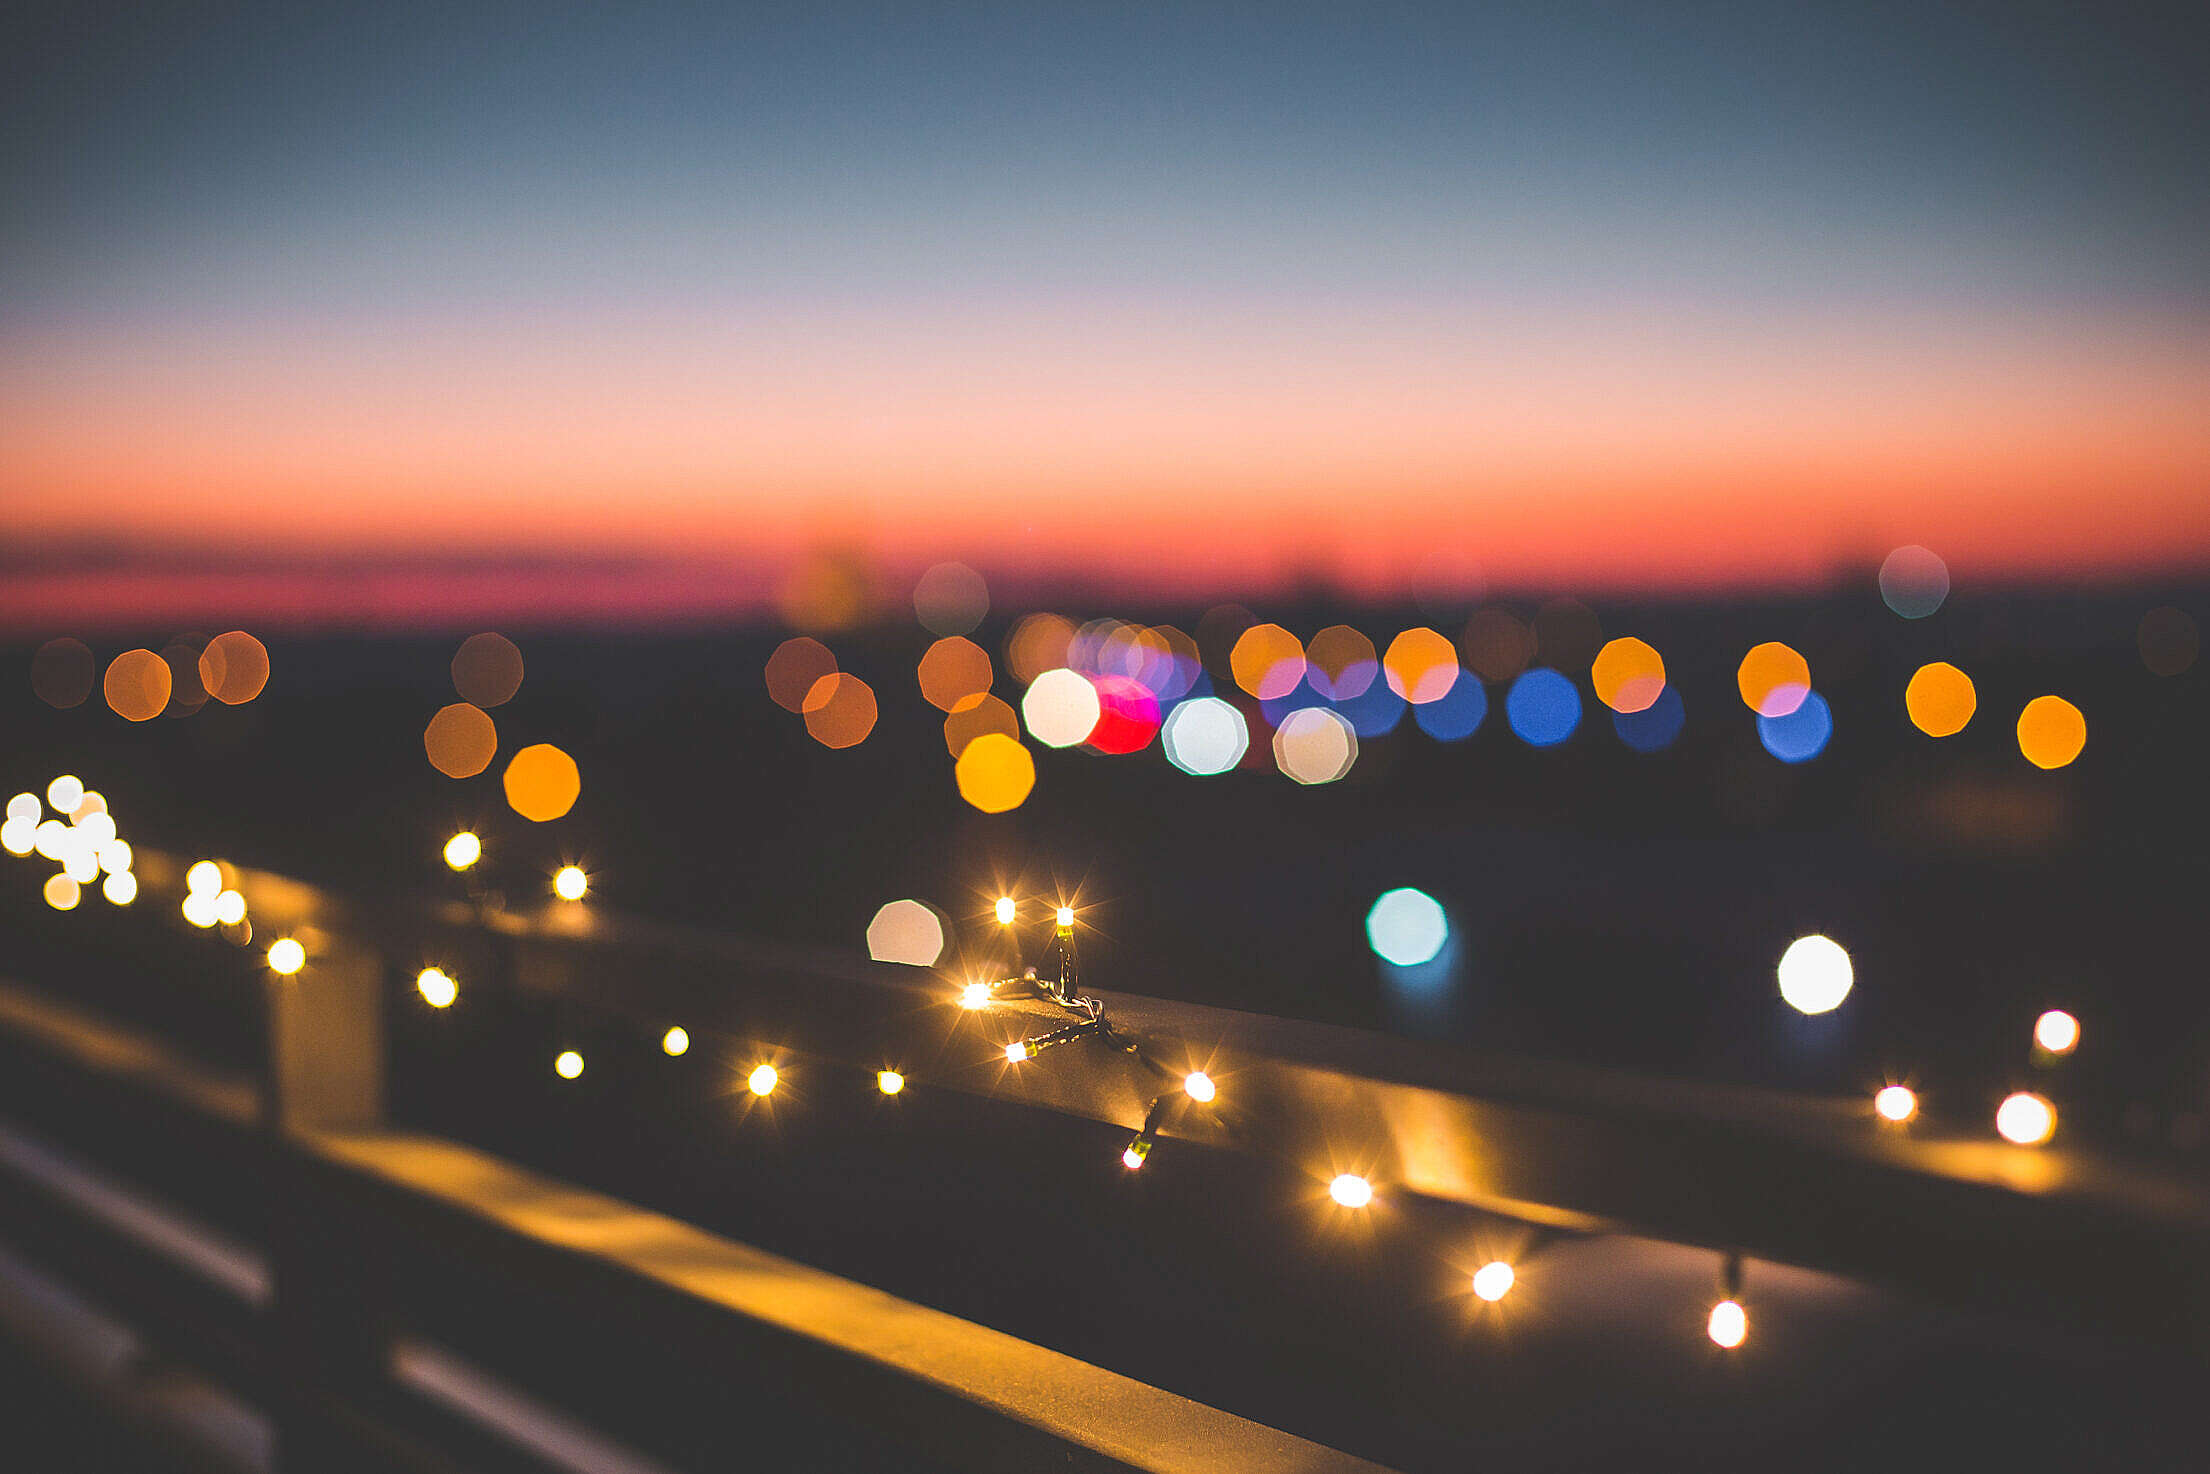 Evening Christmas Lights Over The City Free Stock Photo